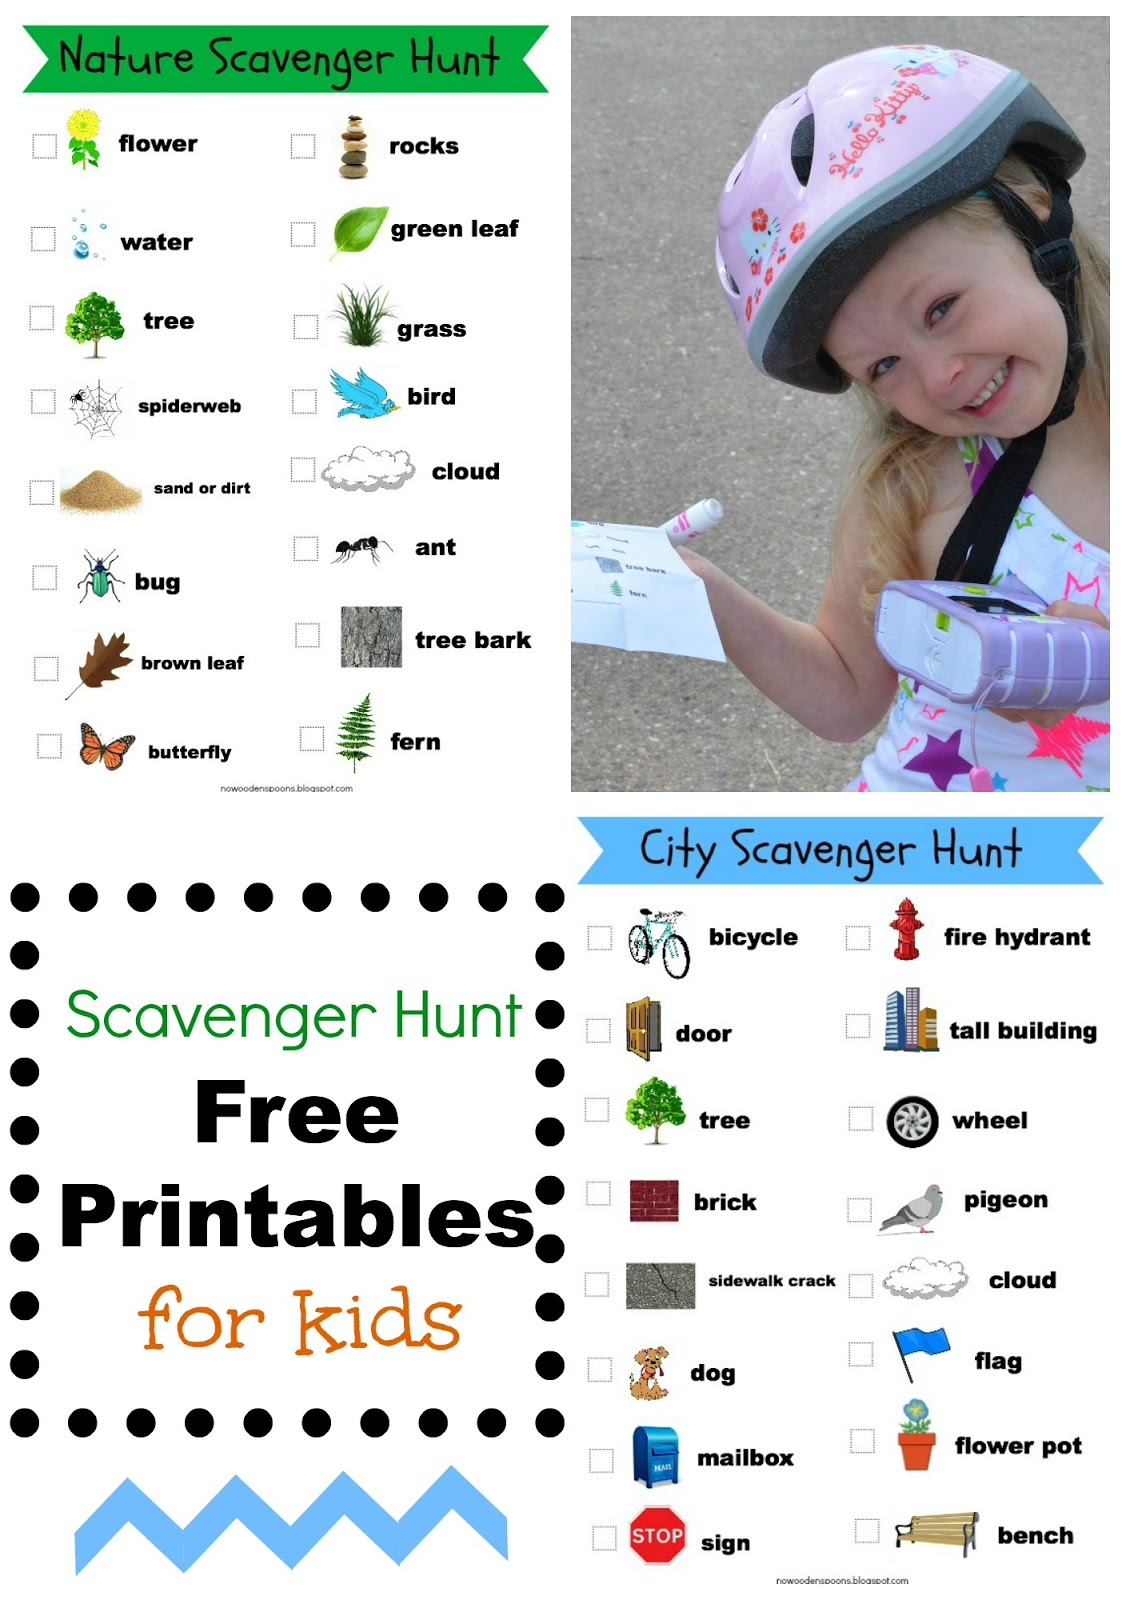 No Wooden Spoons Photo Scavenger Hunt For Kids Free Printables